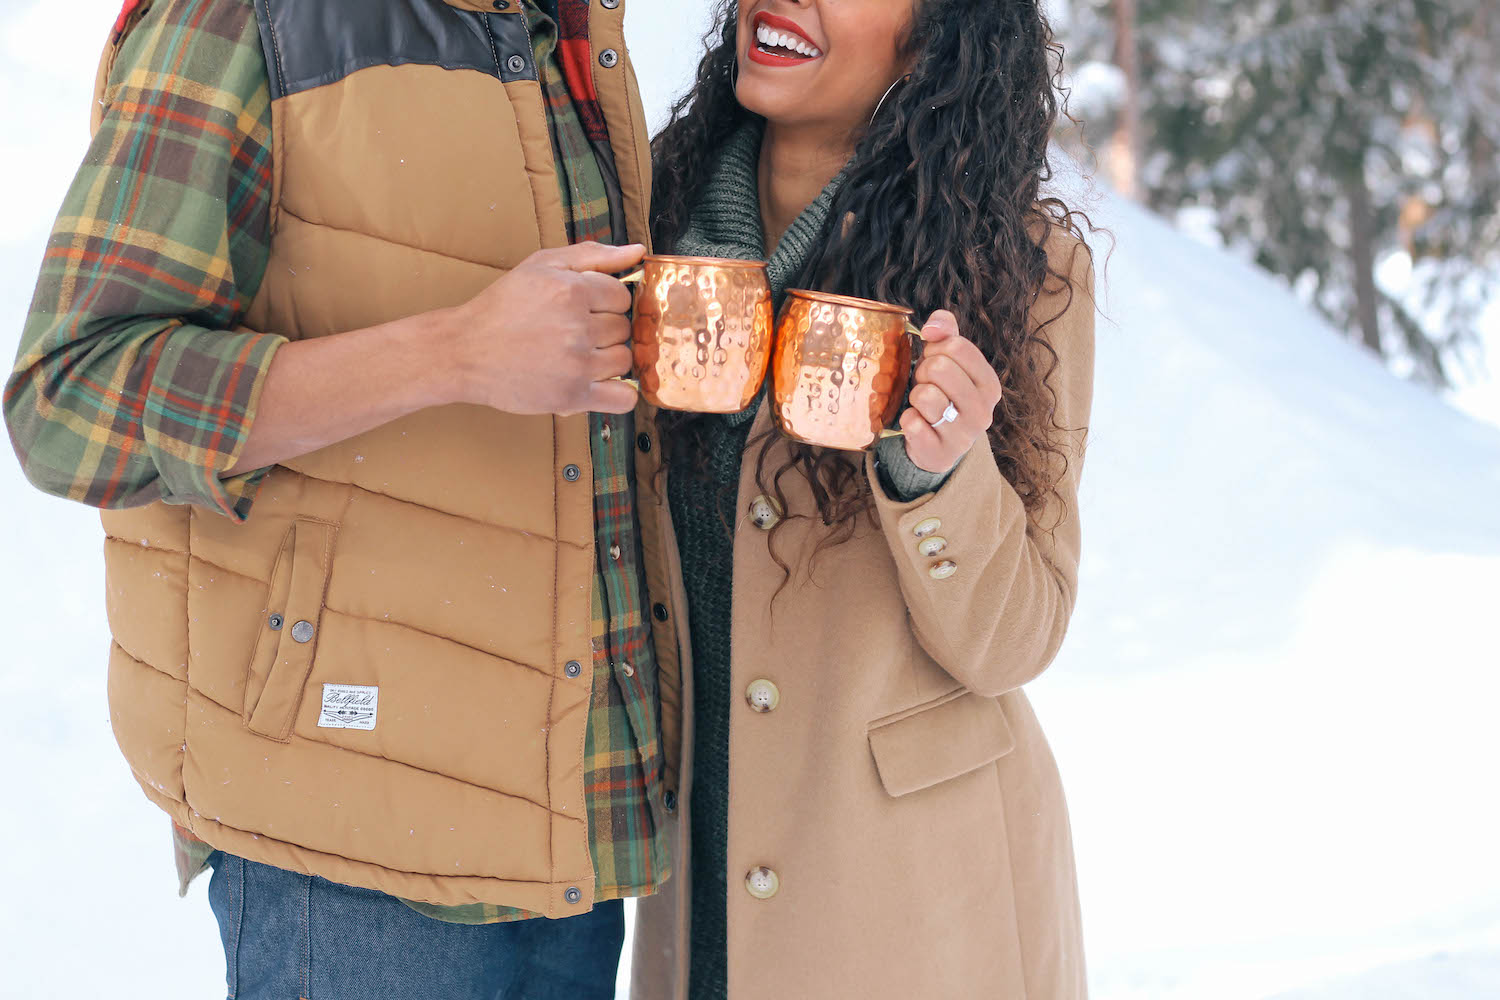 snow-engagement-photoshoot-couple-proposal-cold-weather-4